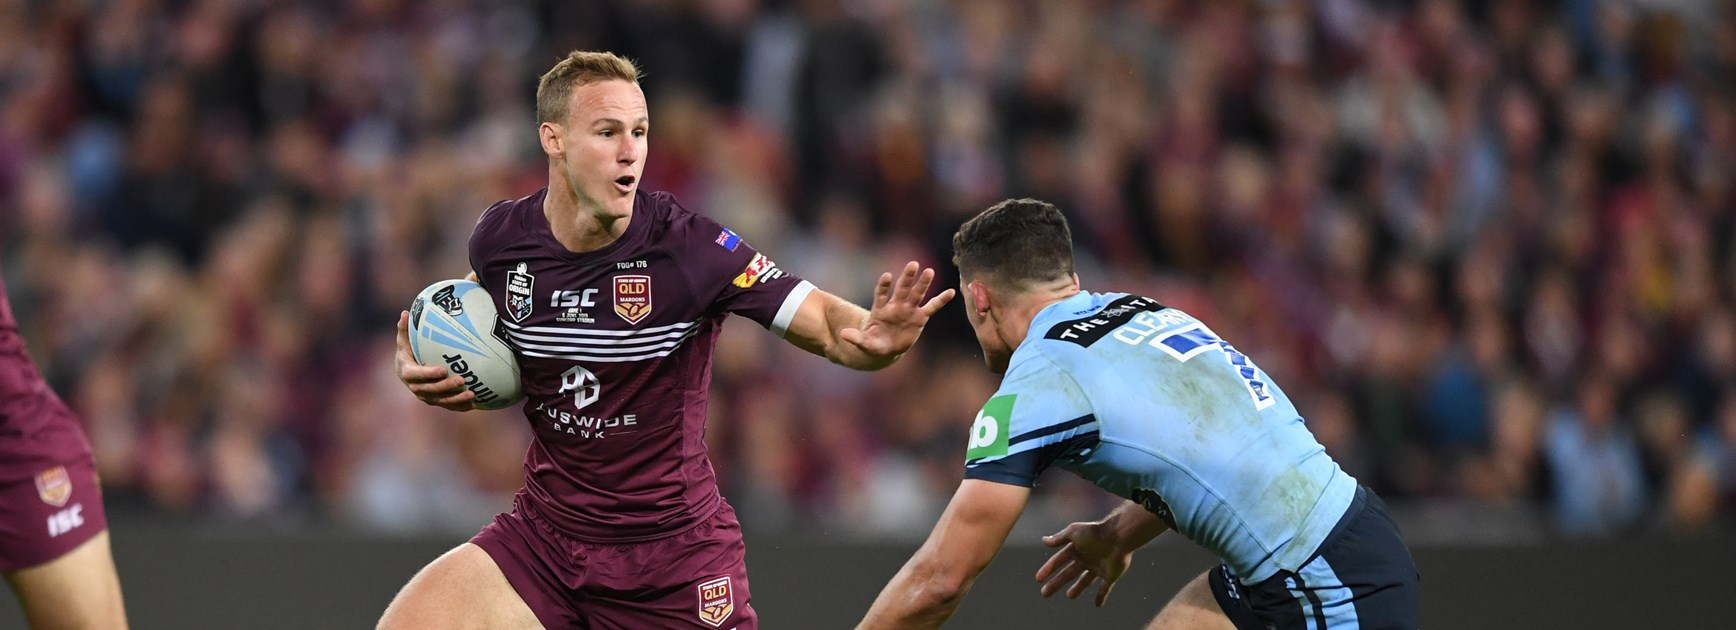 Cherry-Evans to lead Maroons in decider